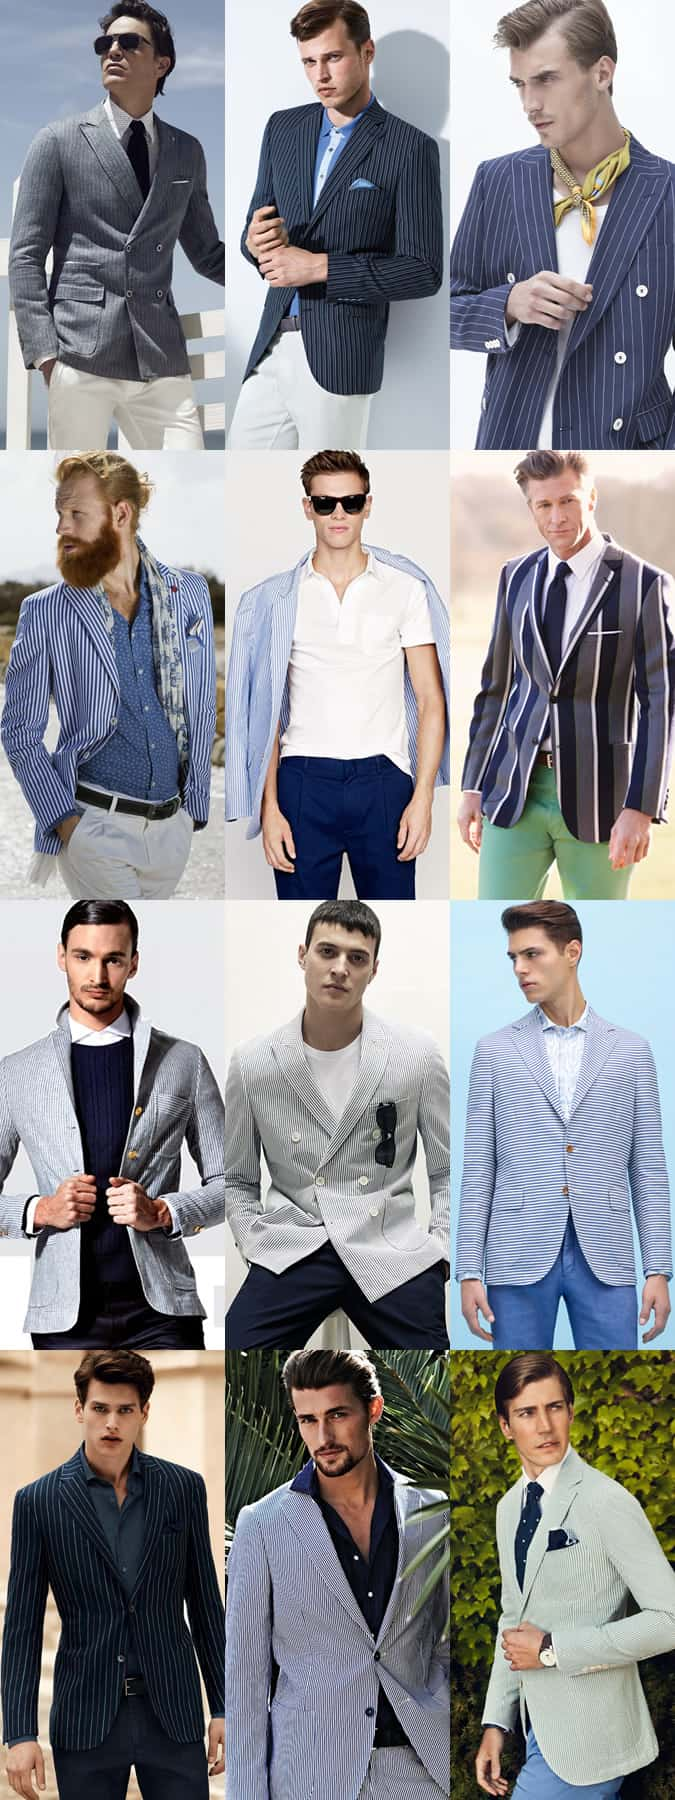 Men's Striped Blazers - Spring/Summer Outfit Inspiration Lookbook